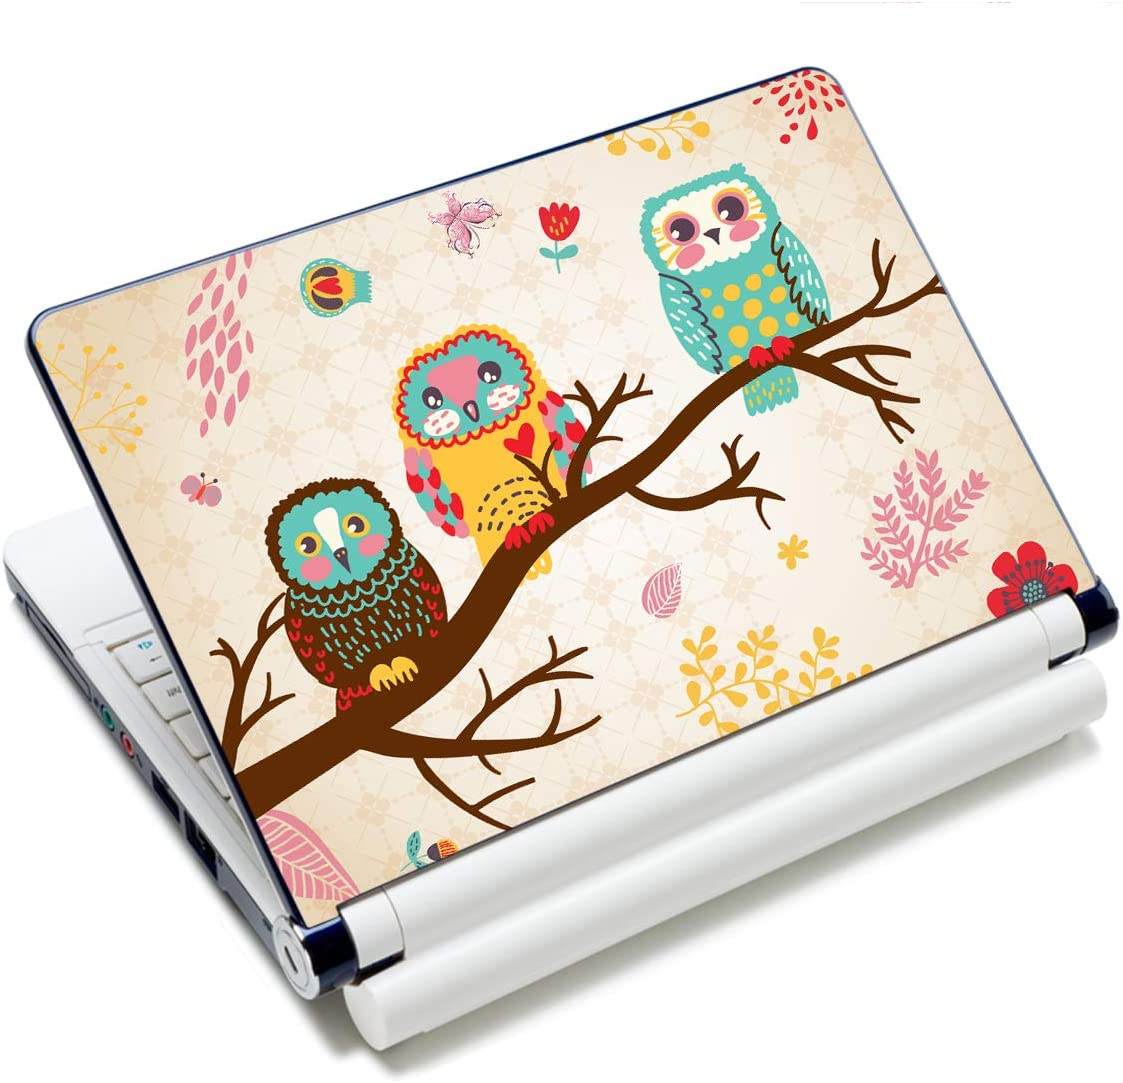 Laptop Stickers Decal,12 13 14 15 15.6 inches Netbook Laptop Skin Sticker Reusable Protector Cover Case for Toshiba Hp Samsung Dell Apple Acer Leonovo Sony Asus Laptop Notebook (Cute Three Owls)